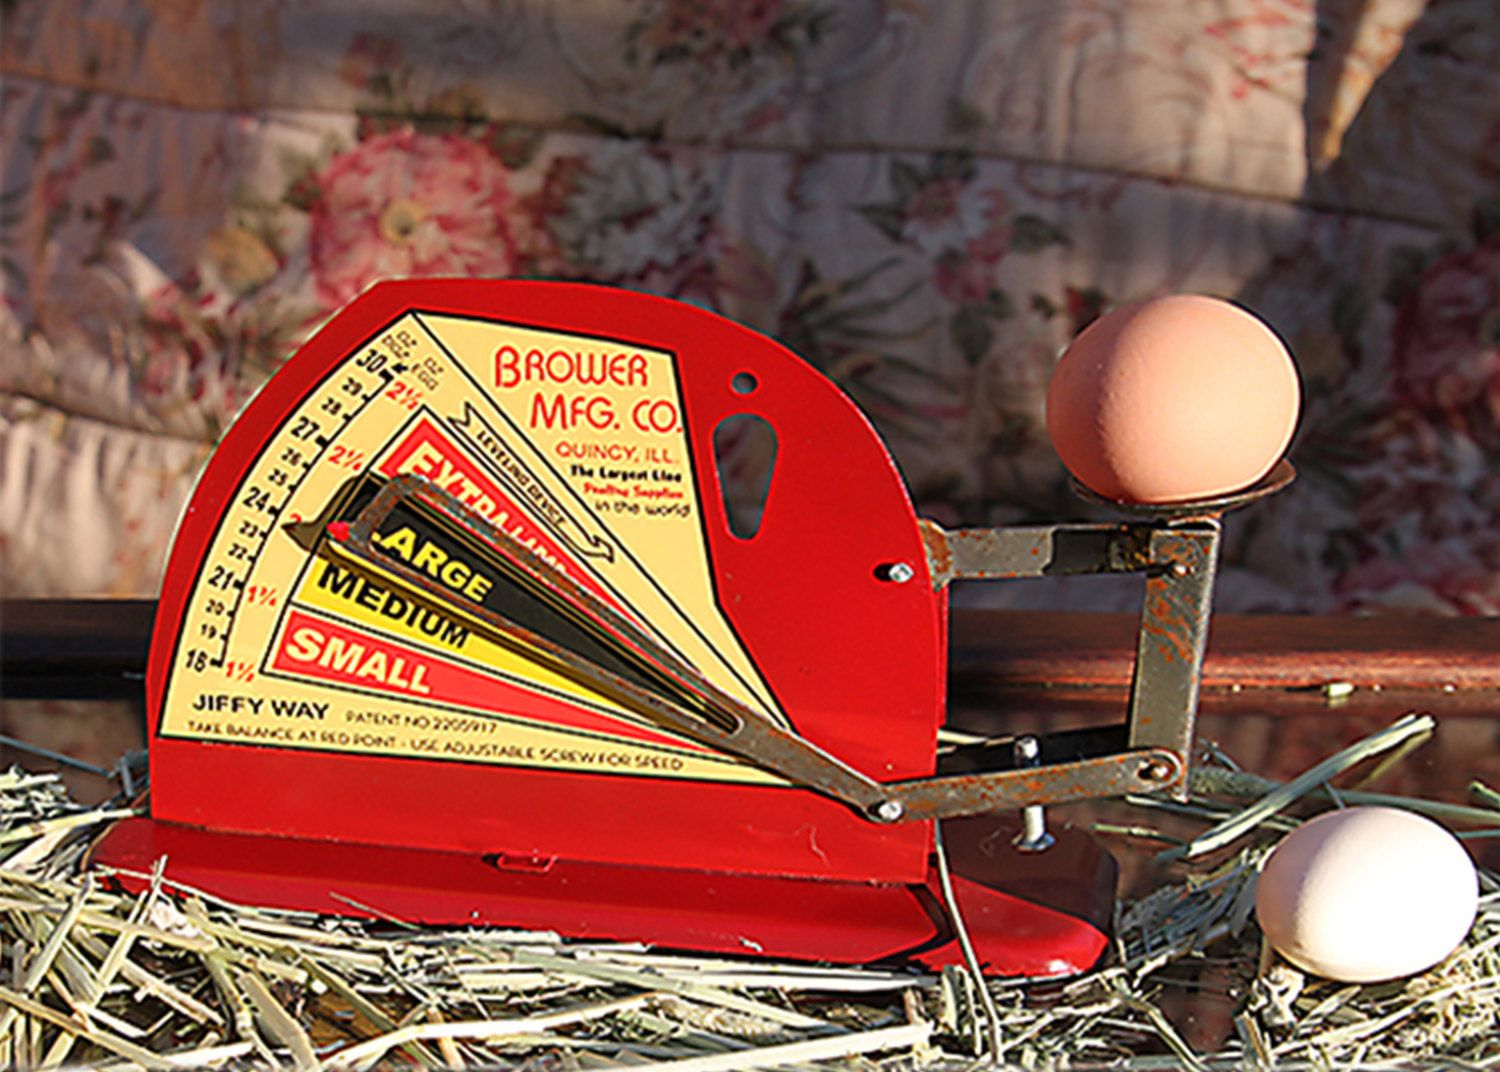 Brower Jiffy Way  Manufacturing Company  Egg Scale